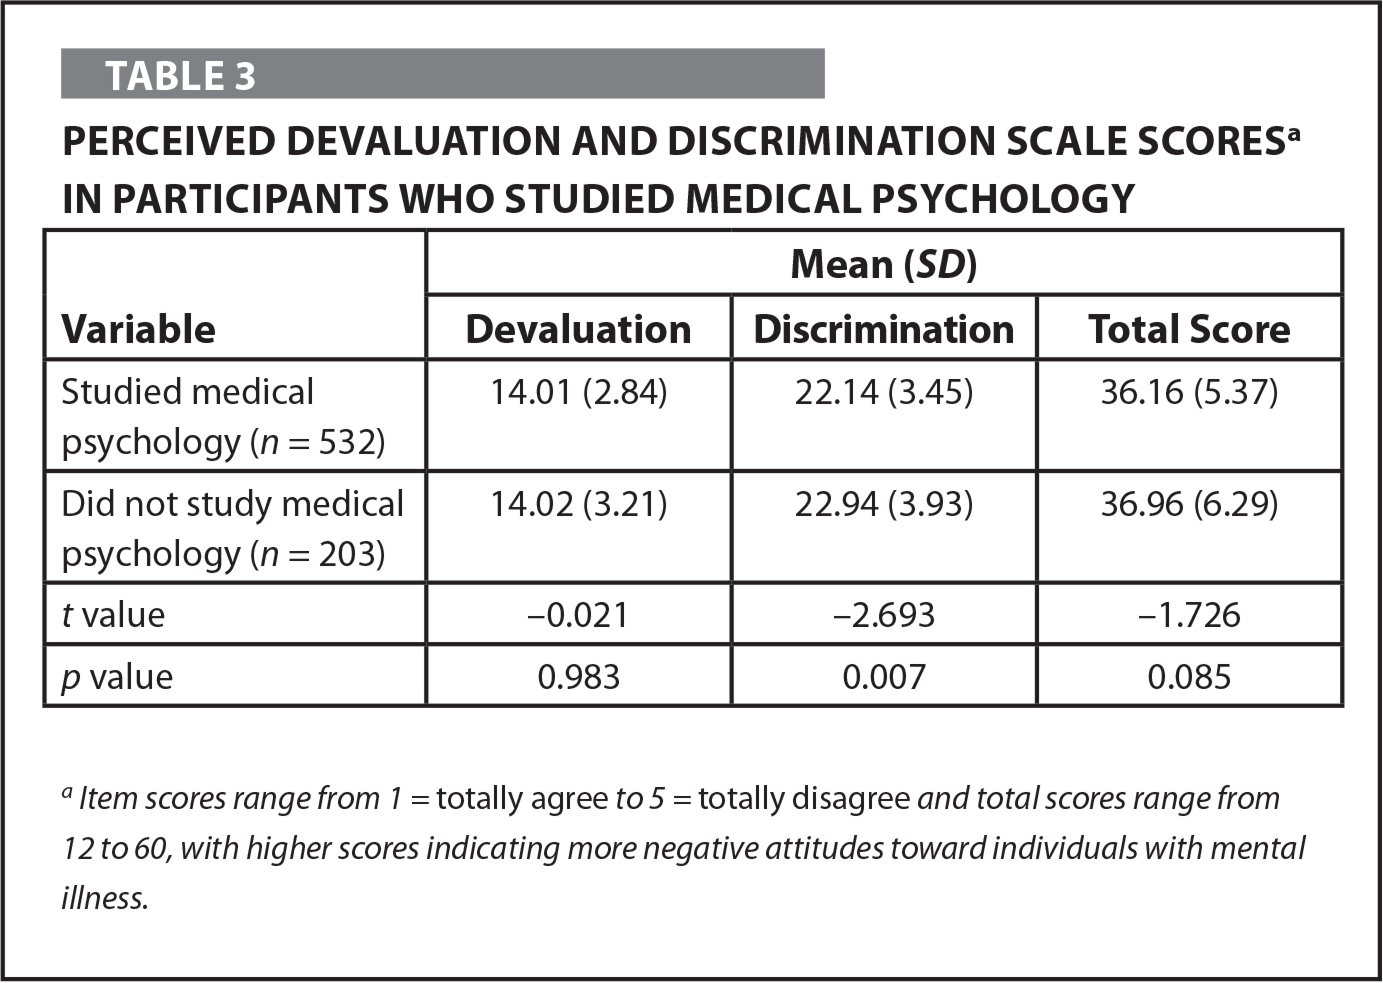 Perceived Devaluation and Discrimination Scale Scoresa in Participants Who Studied Medical Psychology